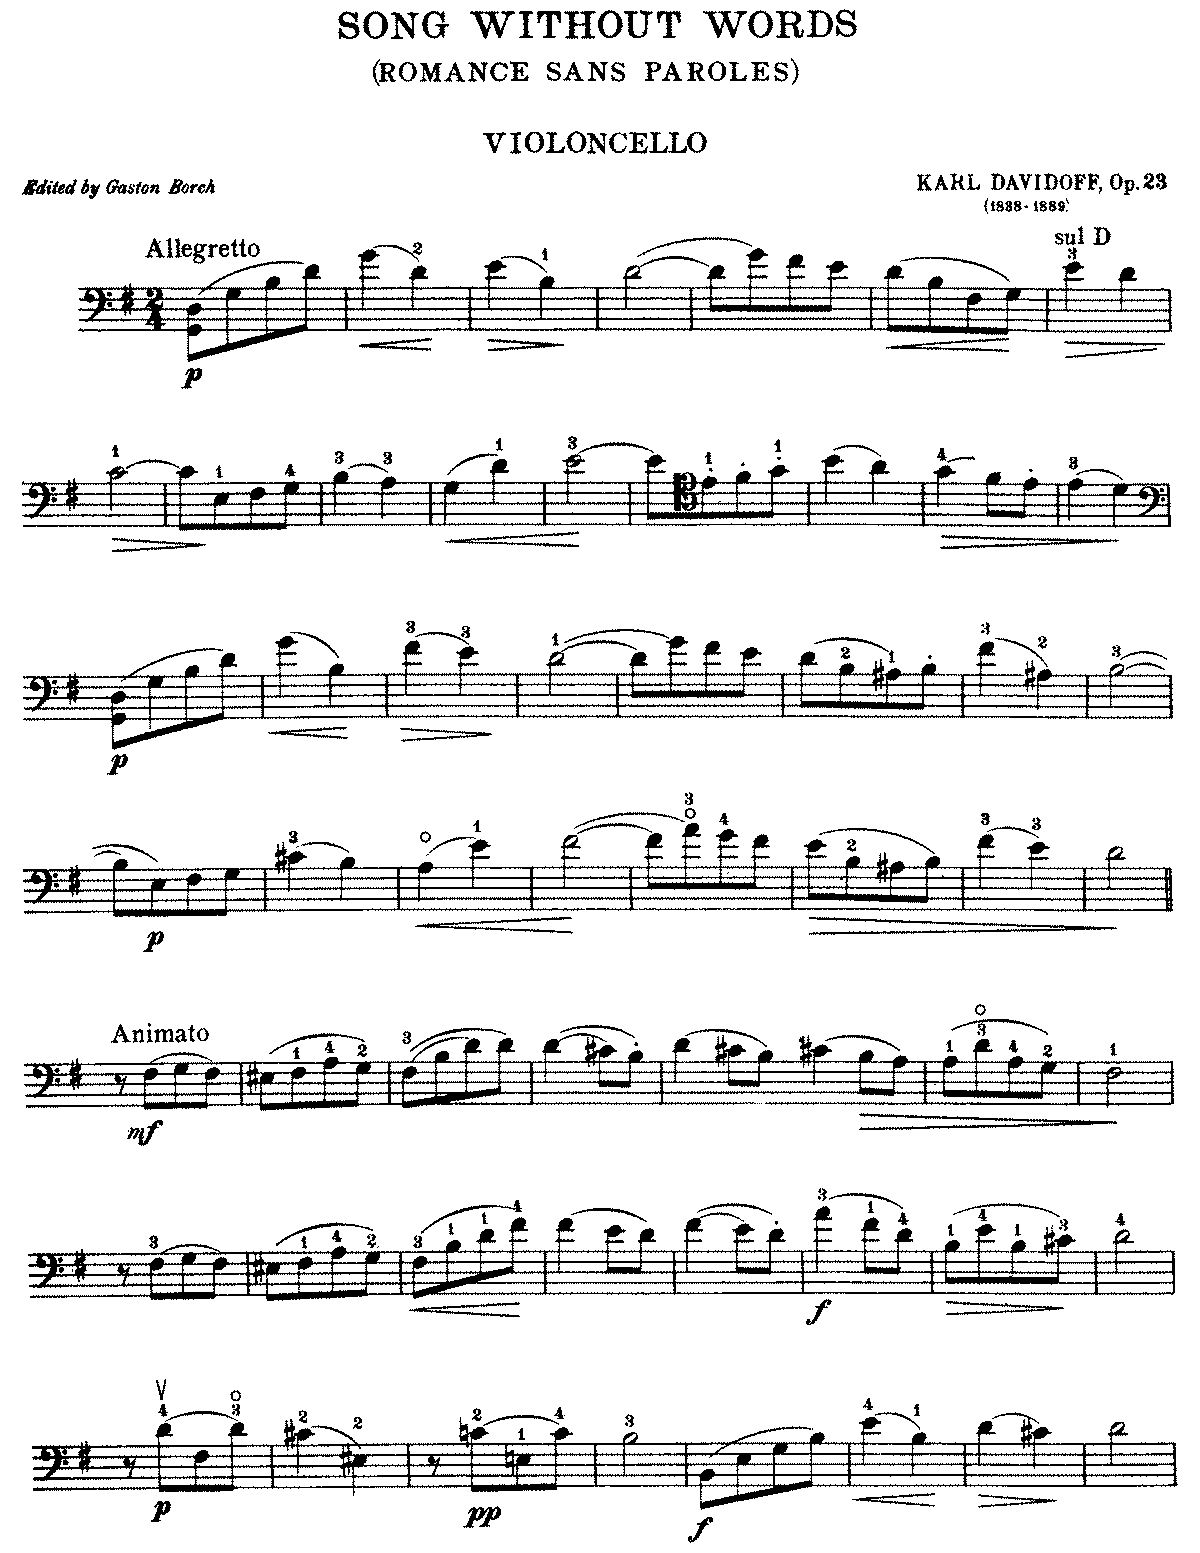 PMLP46468-Davidoff - Song-without-words cello.pdf